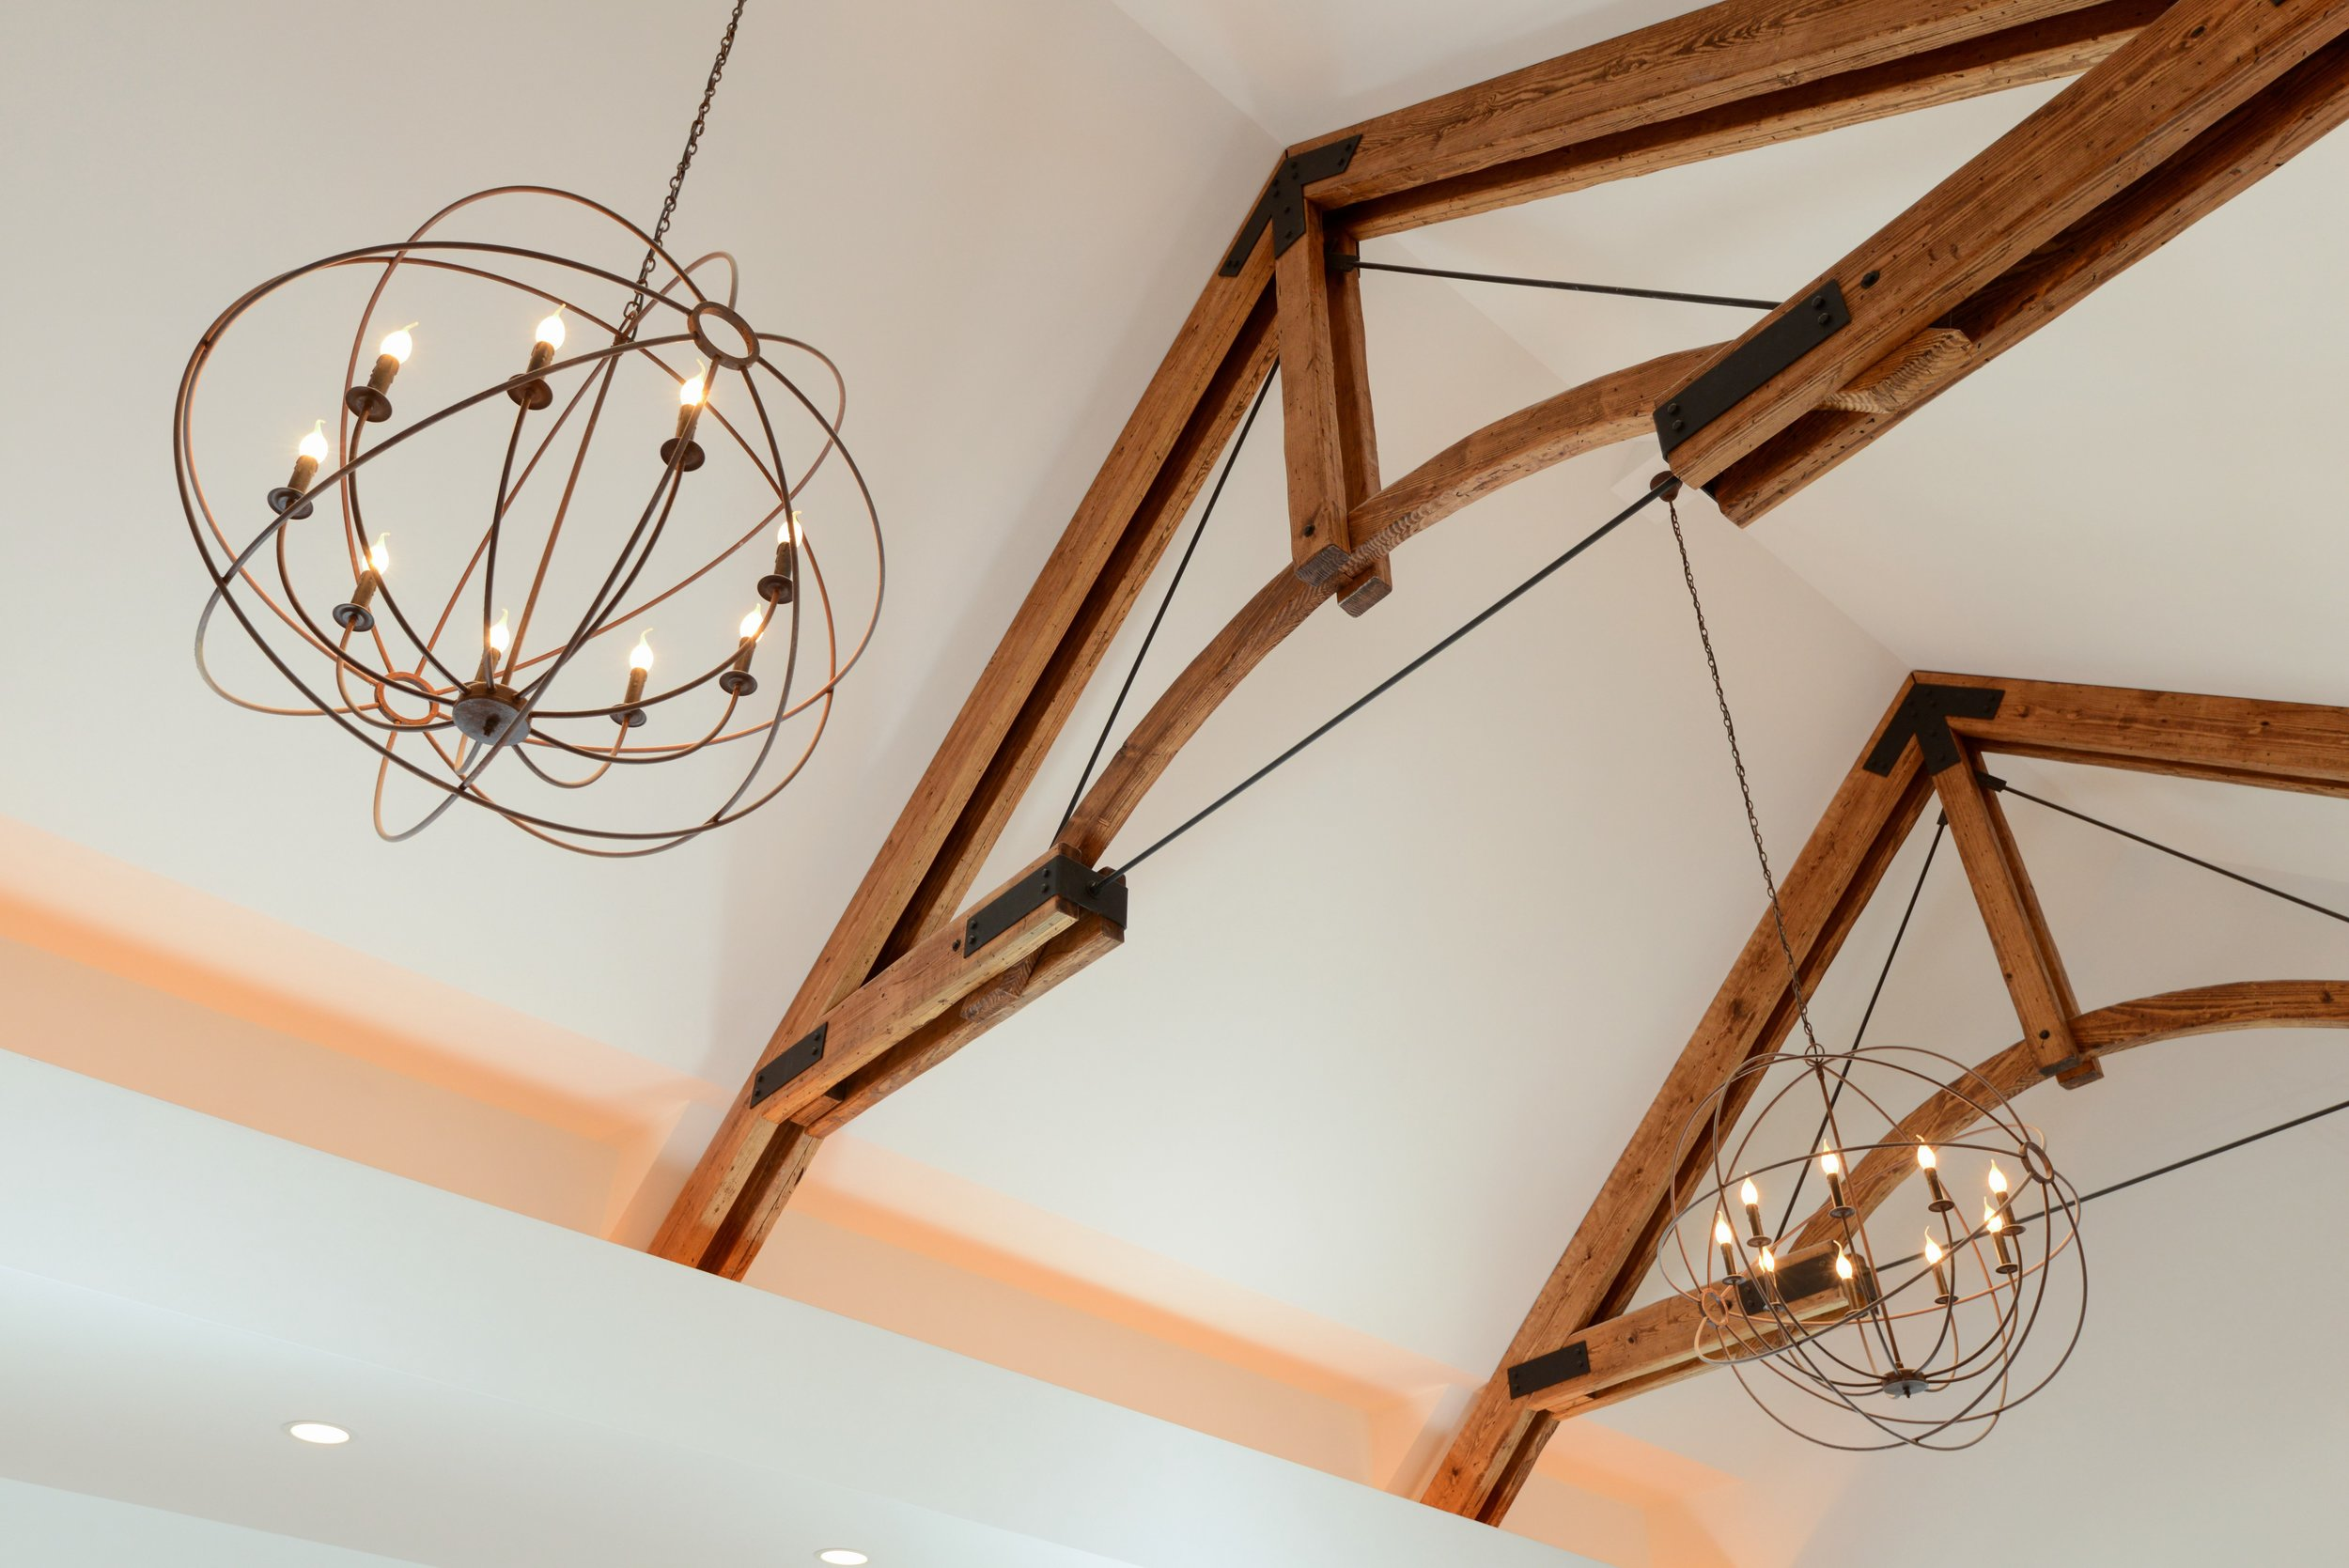 Decorative Trusses and Beams